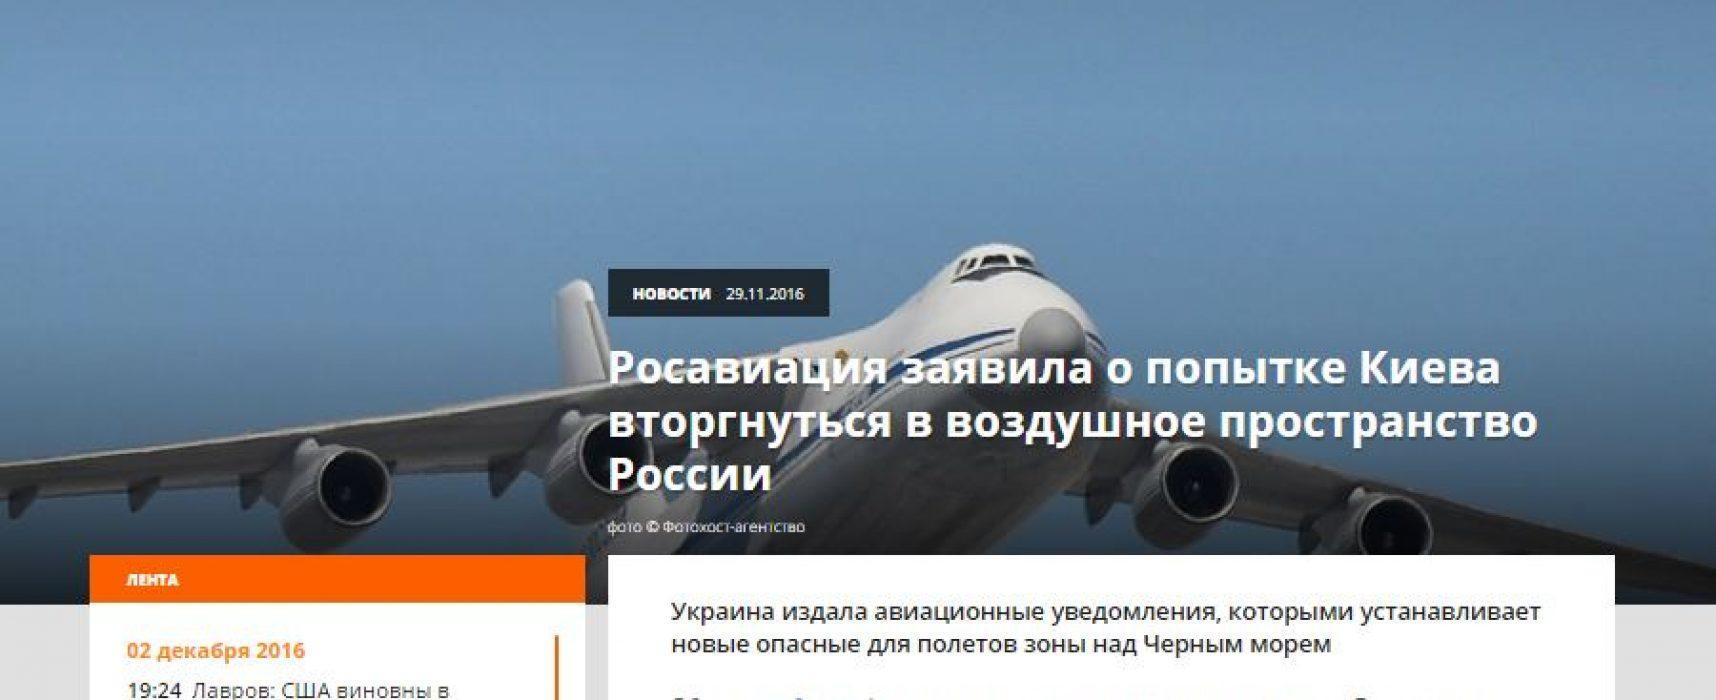 Fake: Kyiv Attempts to Enter Russian Airspace